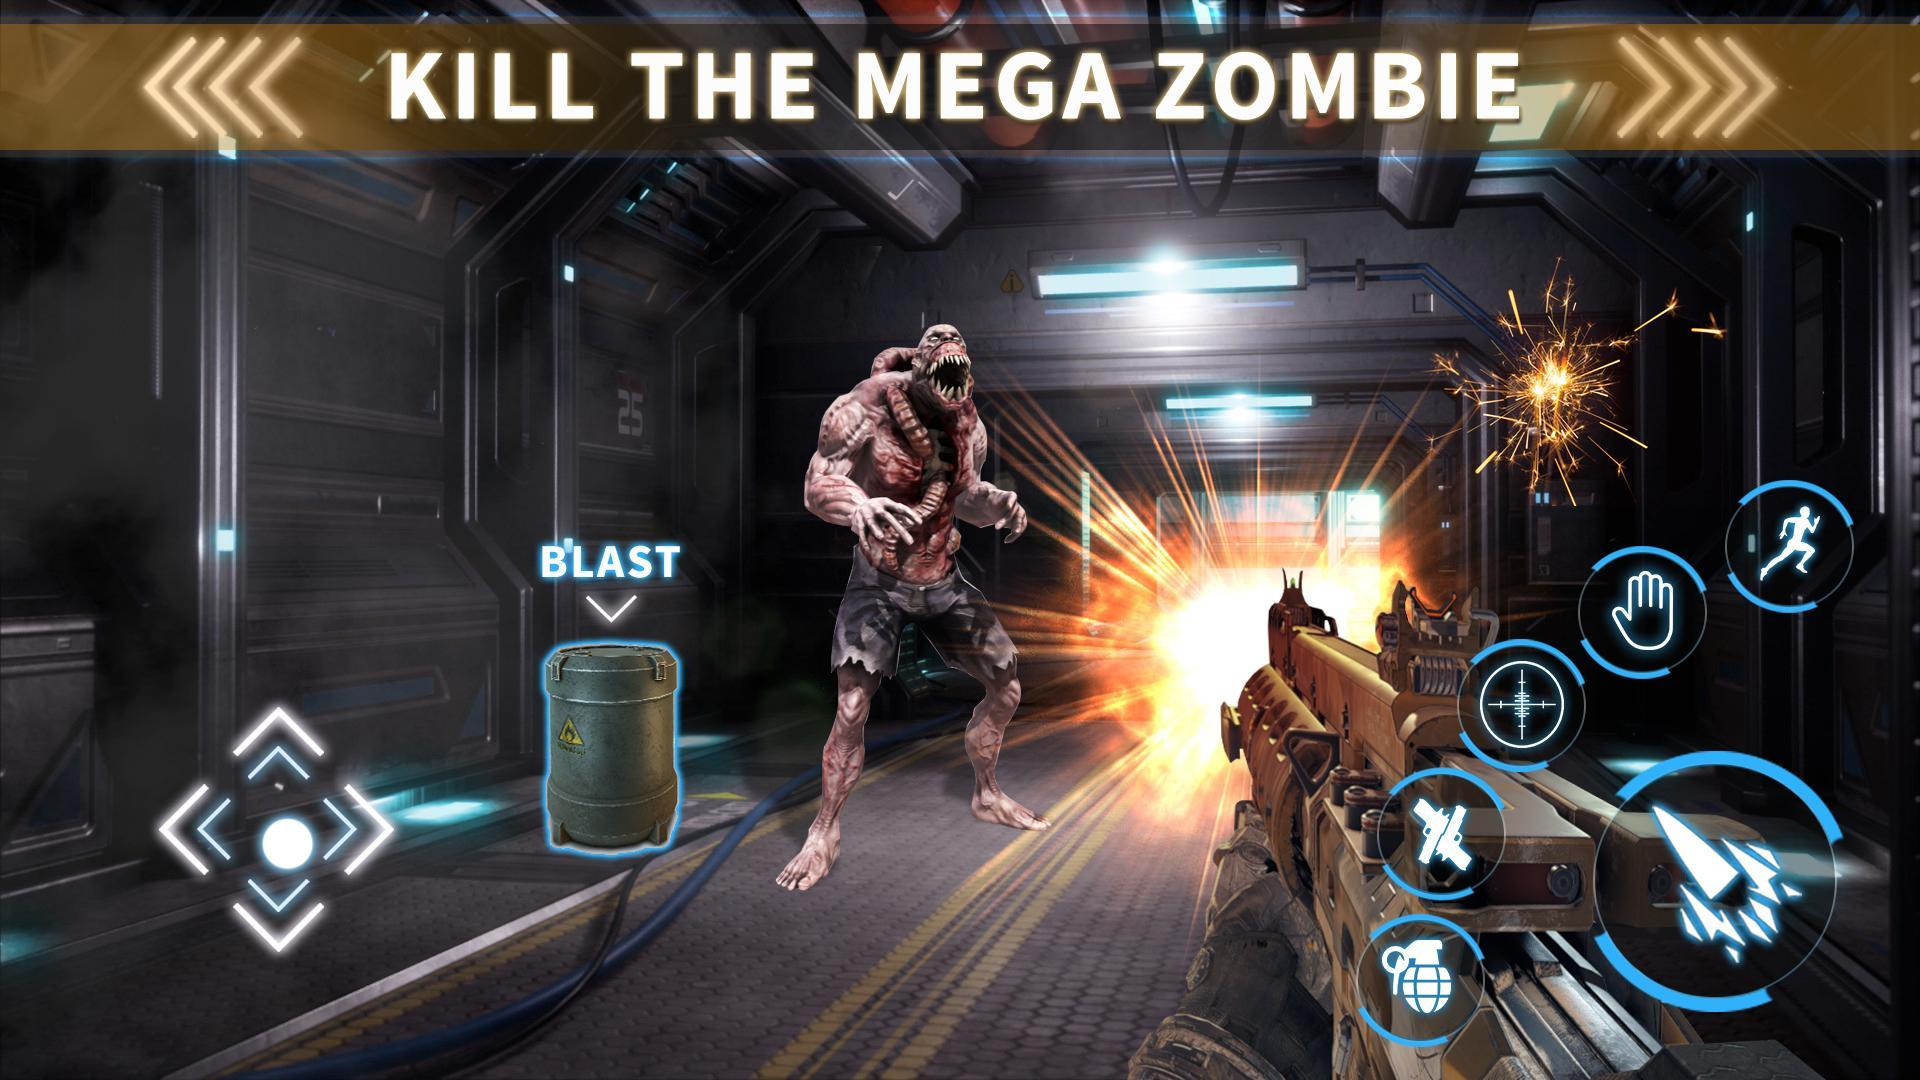 Dead Zombies Trigger Effect For Android Apk Download